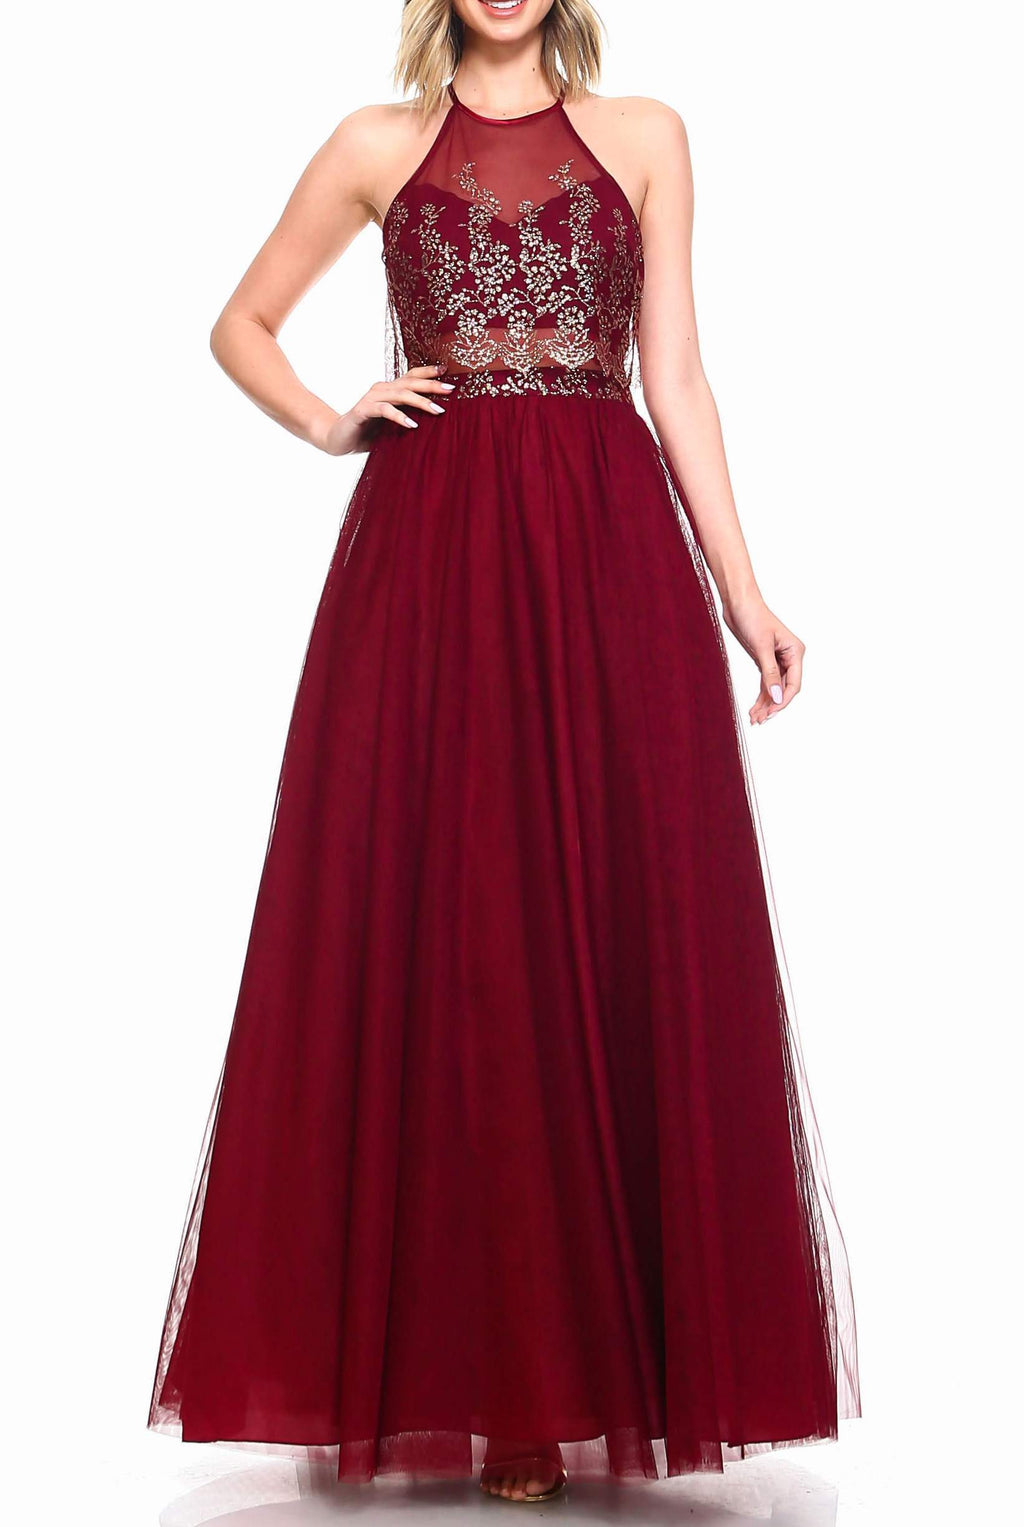 Teeze Me | Sleeveless Halter Glitter Embellished Illusion Popover Top Long Dress | Burgundy/Gold - Teeze Me